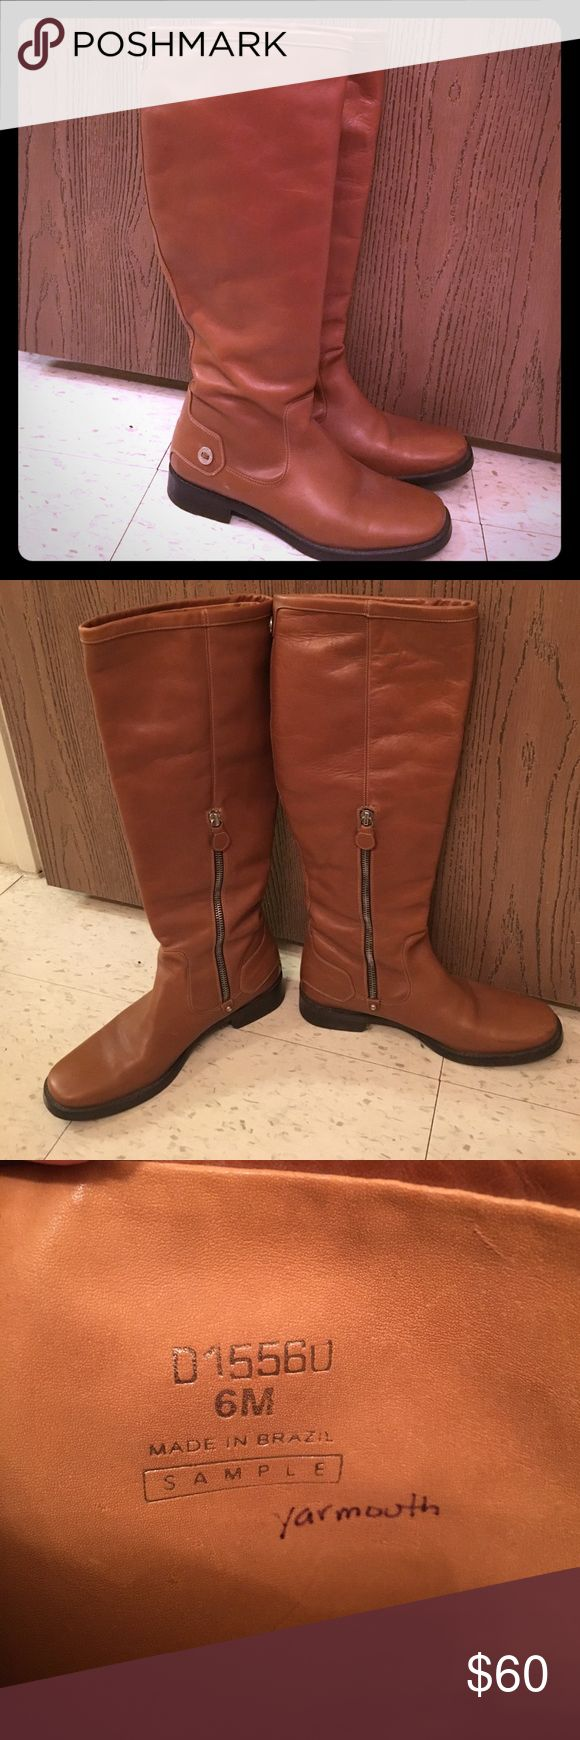 Cole Haan mid-calf boots These Cole Haan sample boots are in great condition and we're hardly ever worn. The camel color makes it easy to wear with anything and is a sleek and traditional riding boot style. Cole Haan Shoes